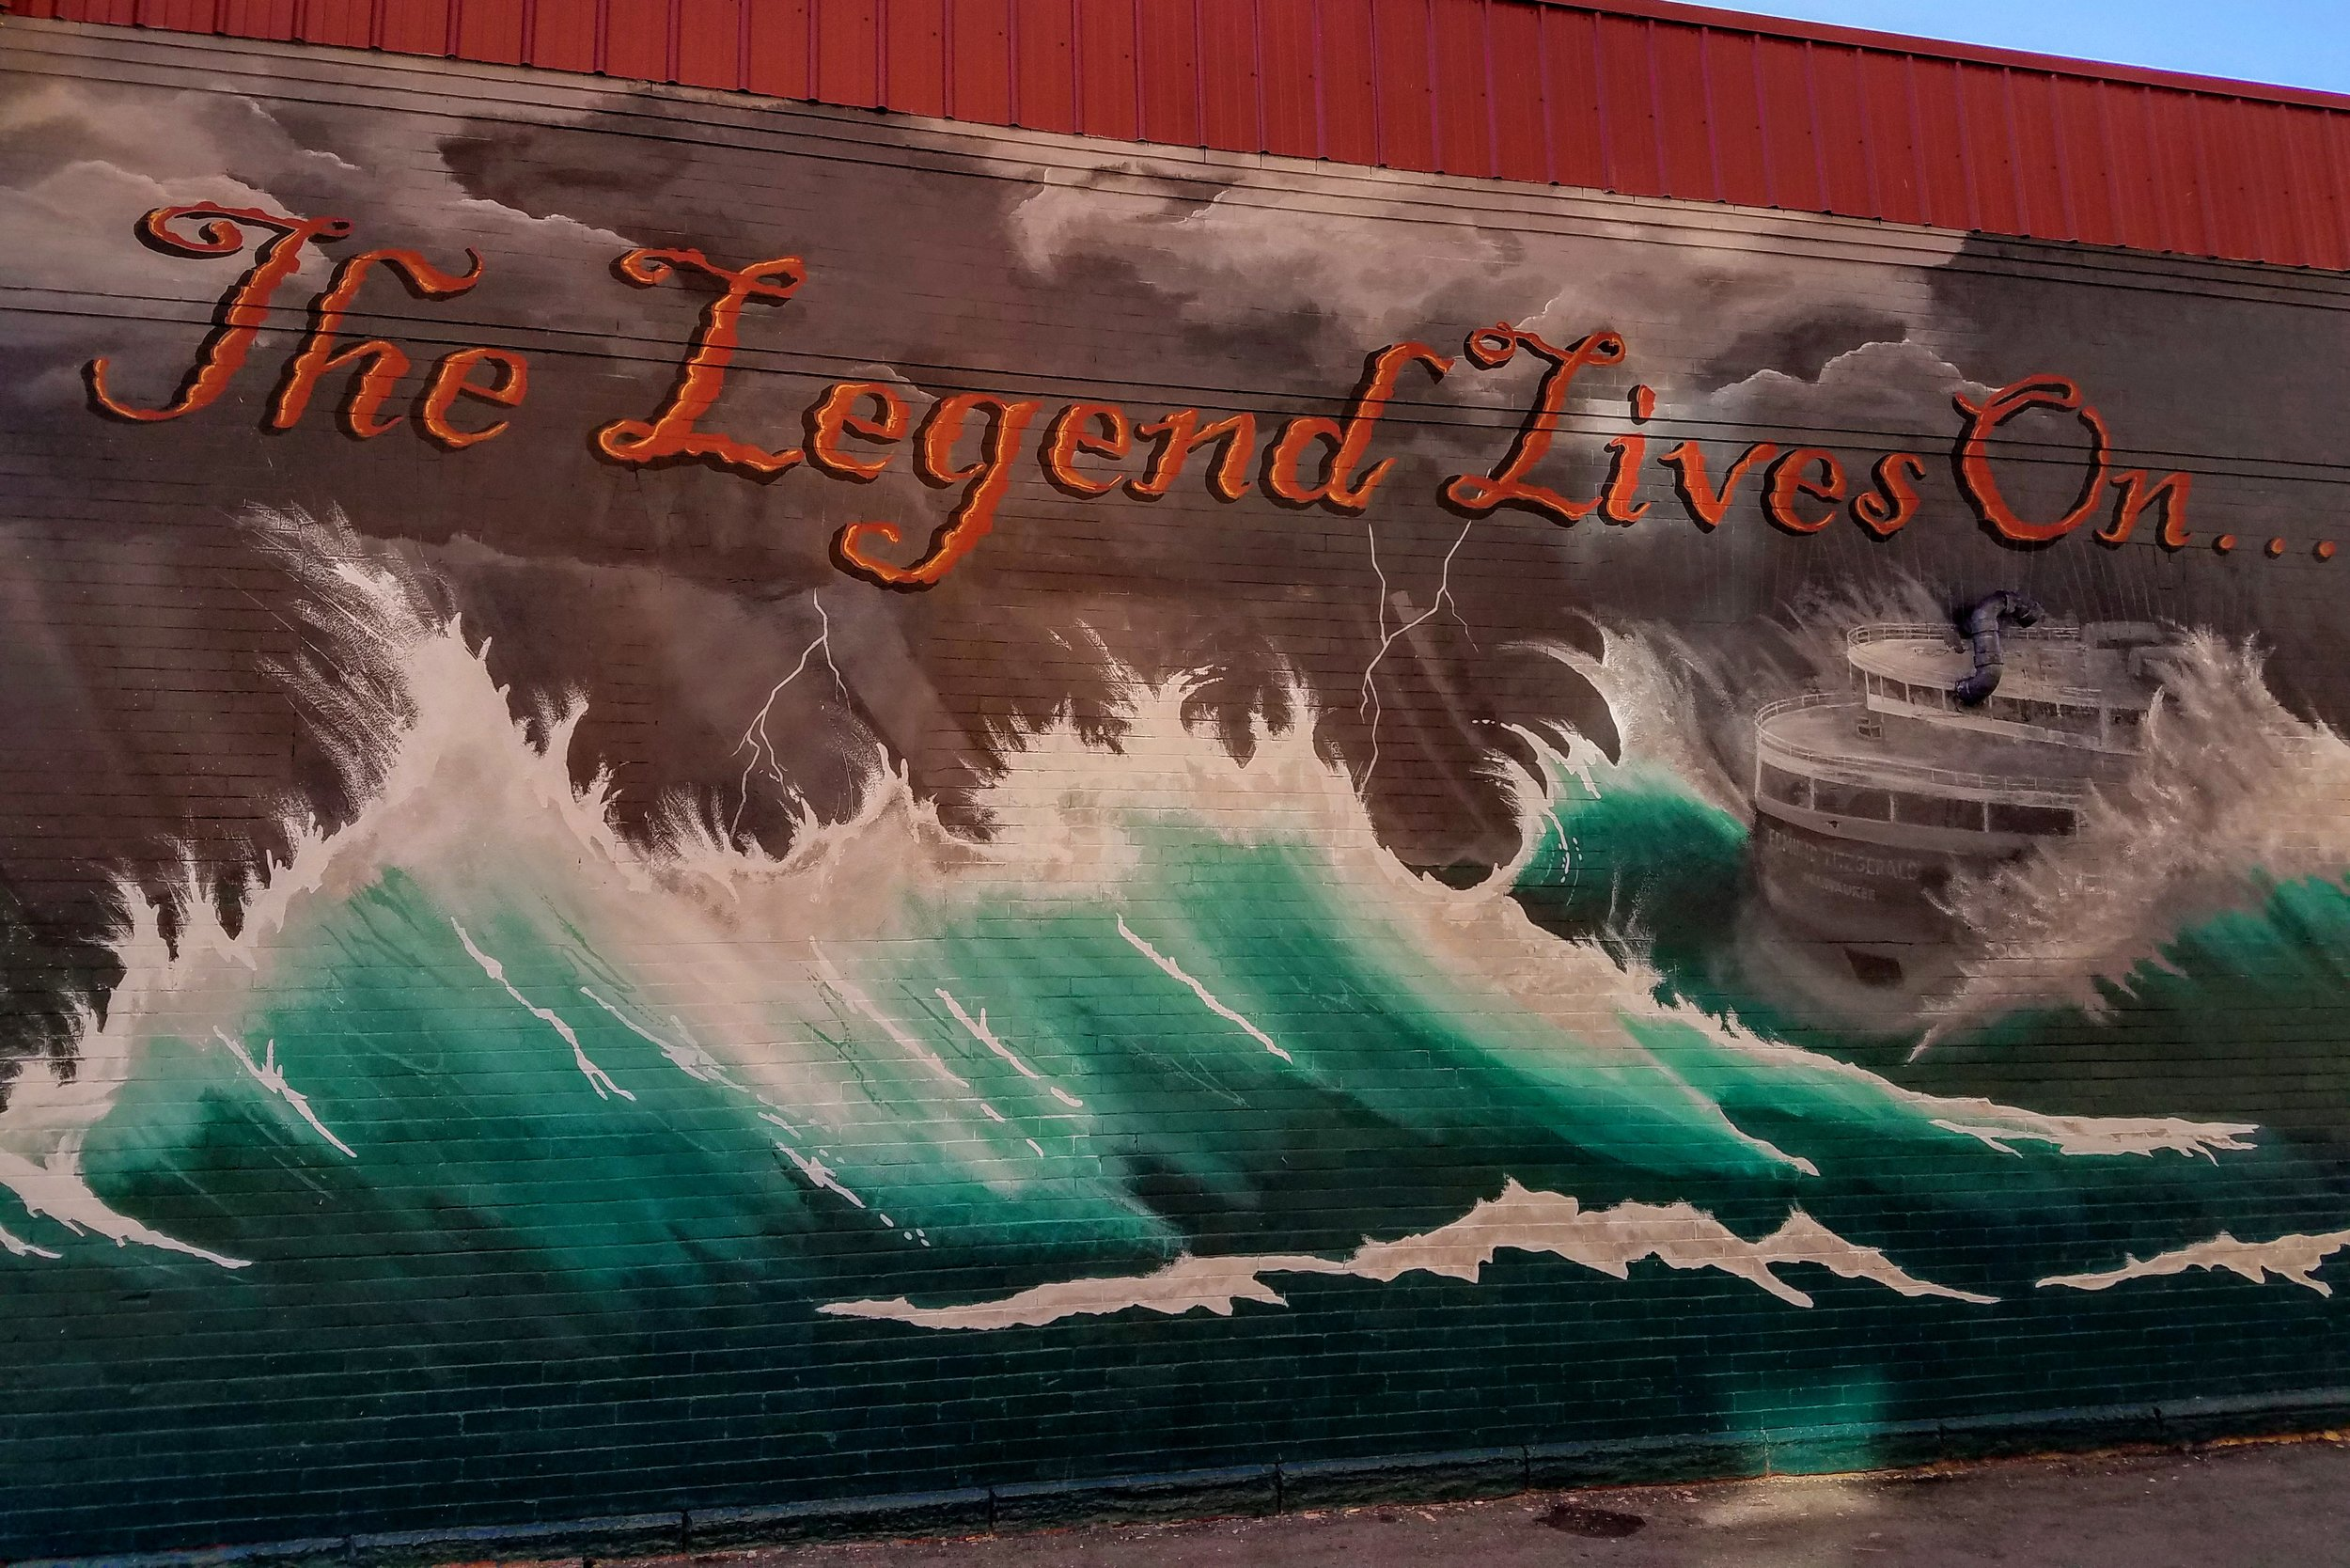 The wreck of the Edmund Fitzgerald memorialized in this mural on 'The Merch' bars side wall. The manager at the bar relayed his memory of the day it sank back on November 10th, 1975